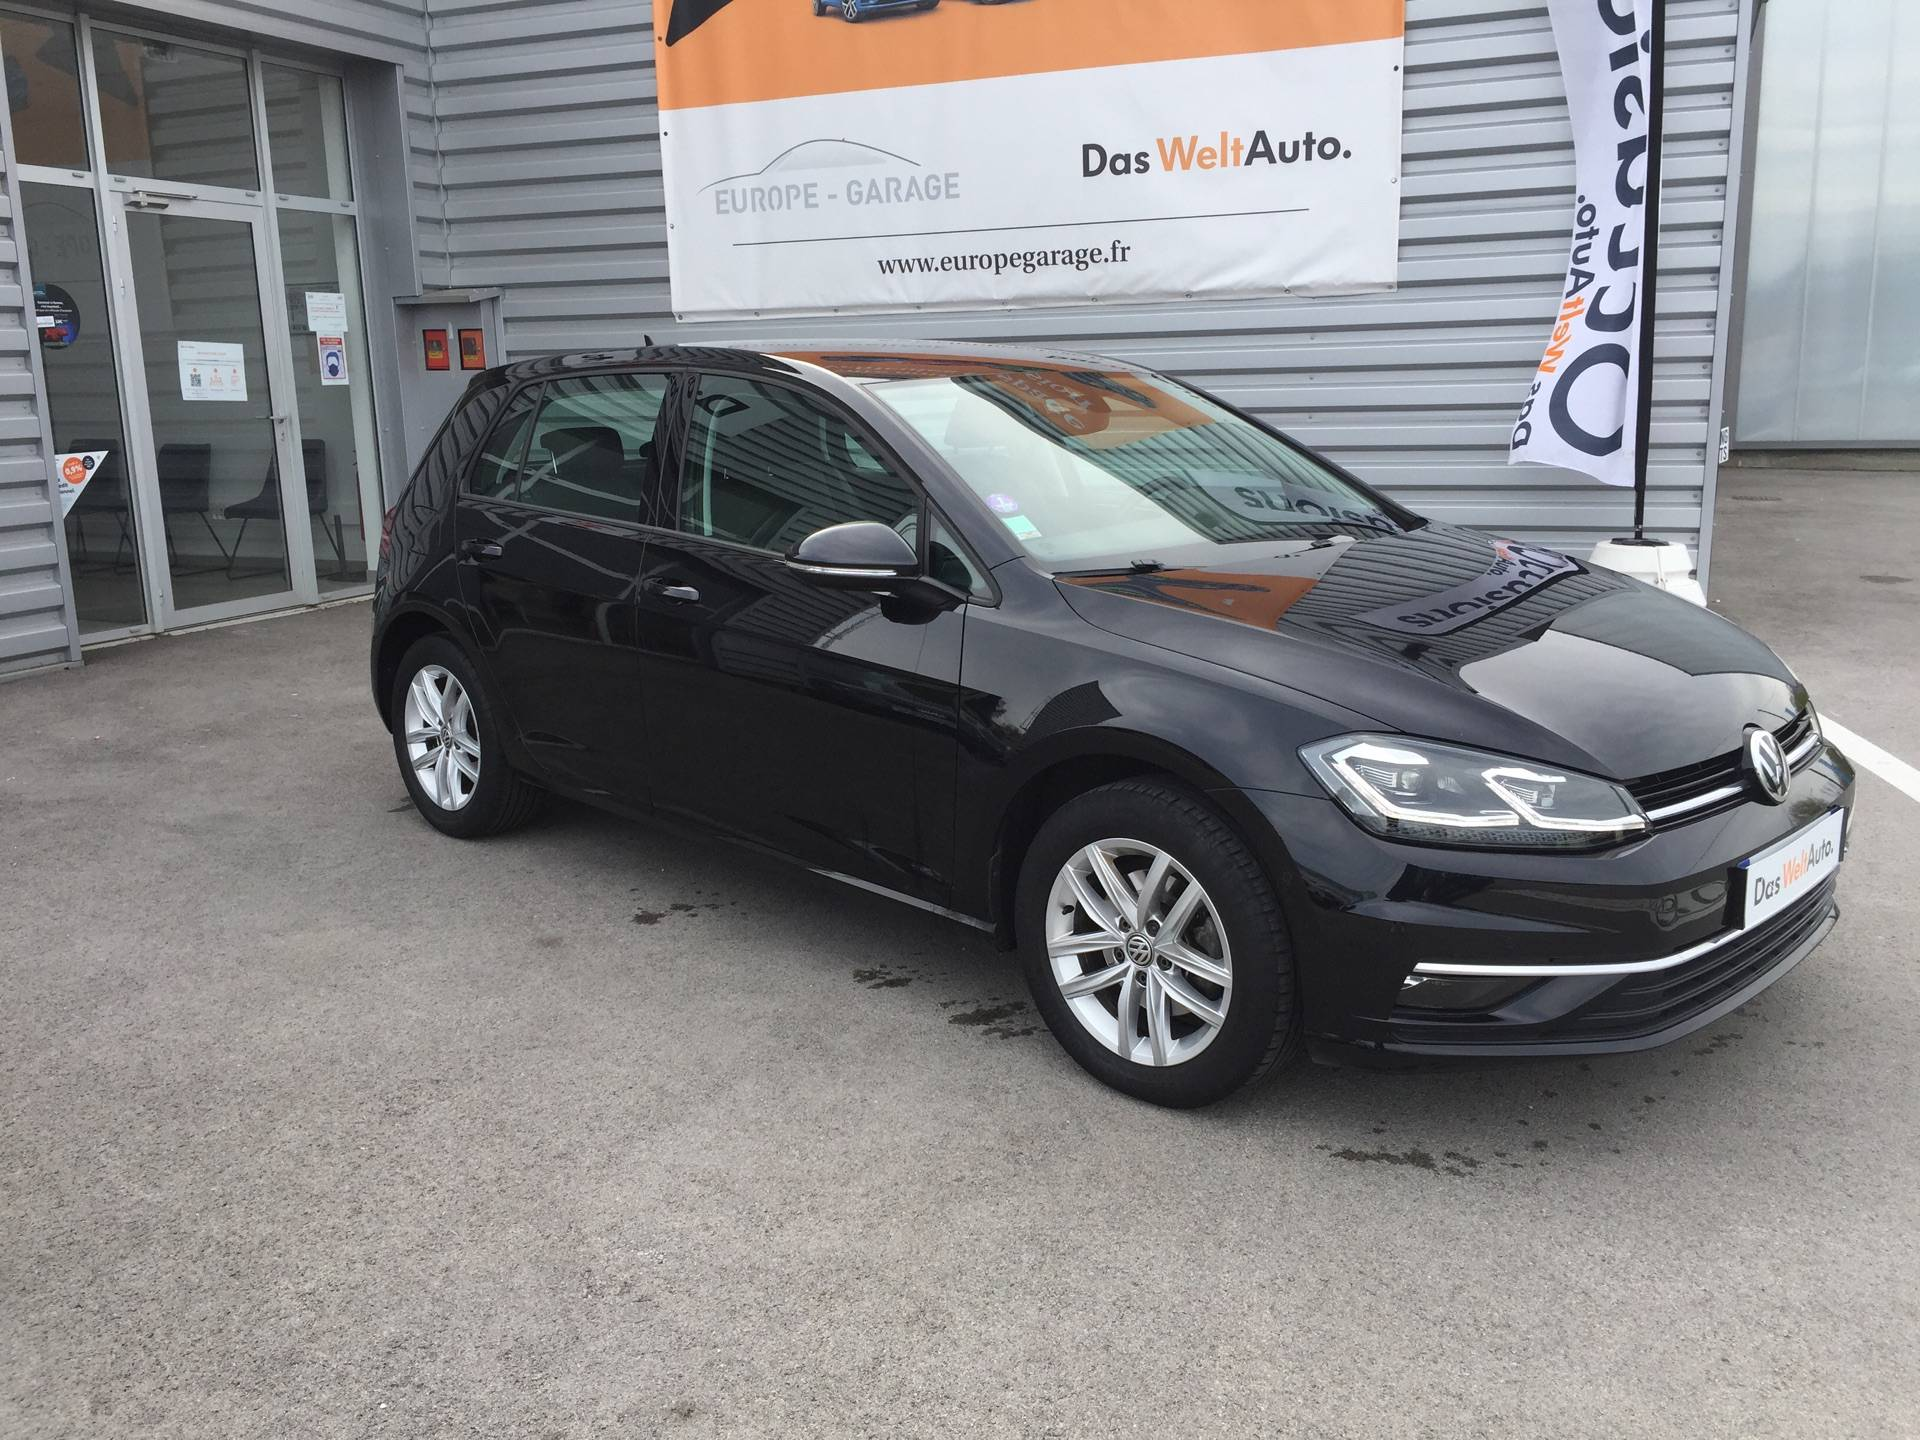 1 - Golf 1.4 TSI 125 BlueMotion Technology DSG7